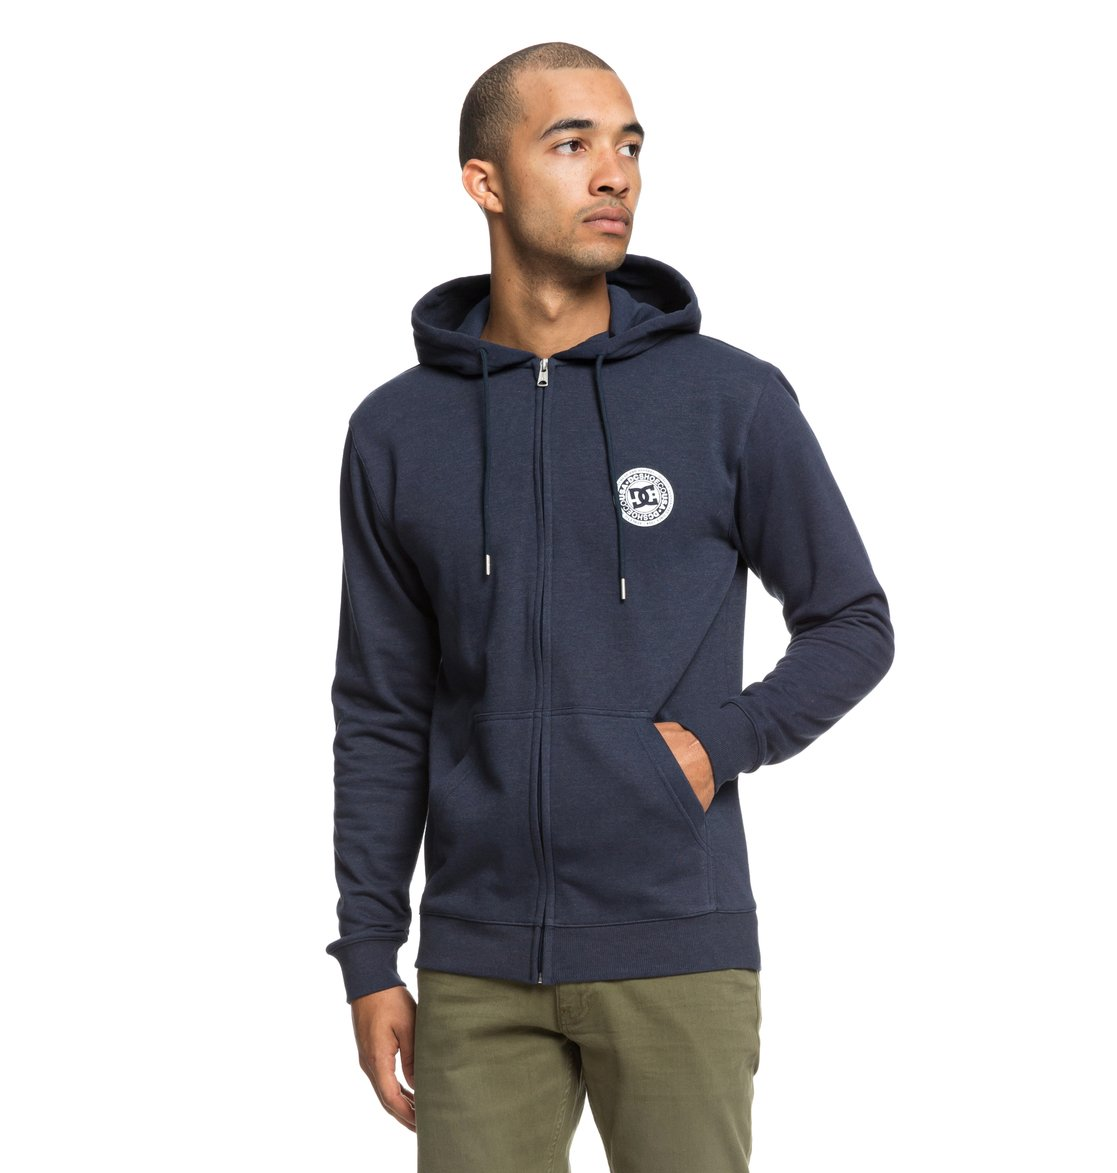 b1018d738 Rebel - Zip-Up Hoodie for Men